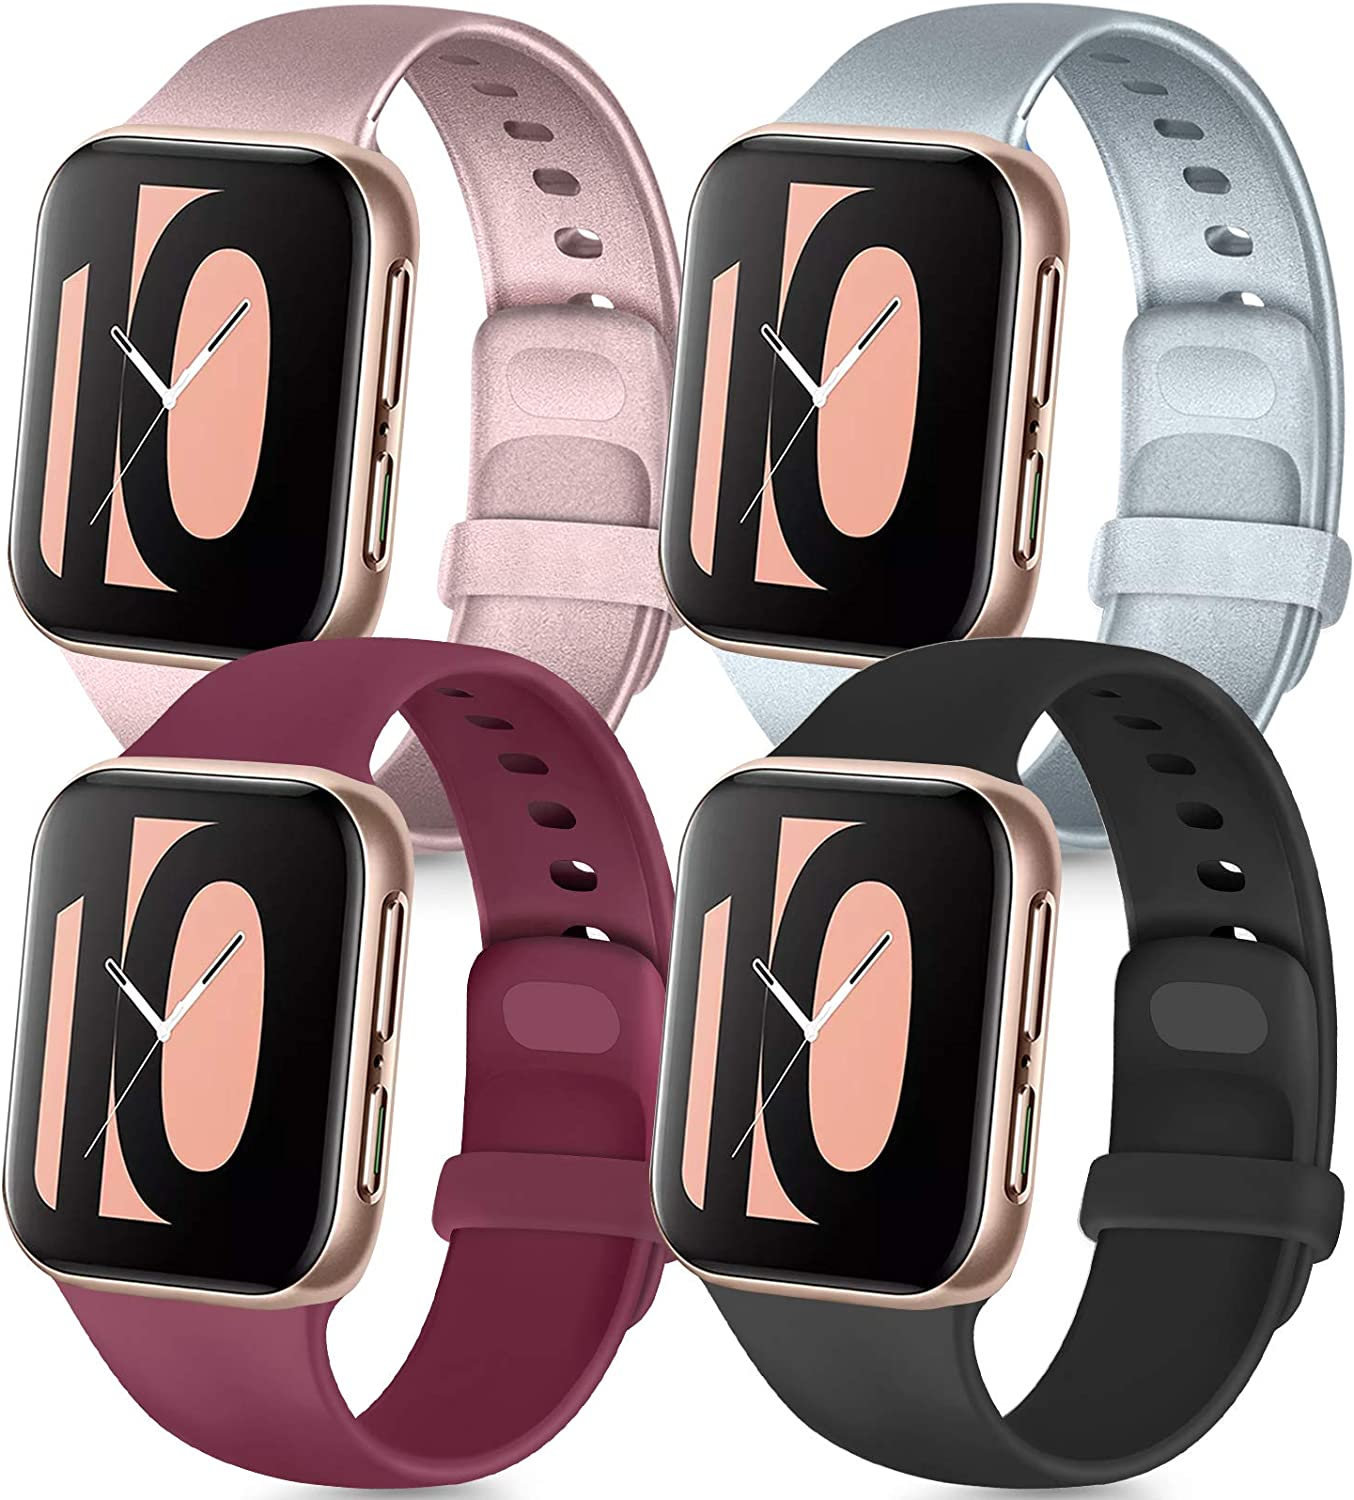 Tobfit 4 Pack Compatible with Apple Watch Band 38mm 42mm 40mm 44mm, Soft Silicone Replacement Band Compatible with iWatch Series 6 5 4 3 SE (Black/Rose Gold/Silver/Wine red, 42mm/44mm S/M)